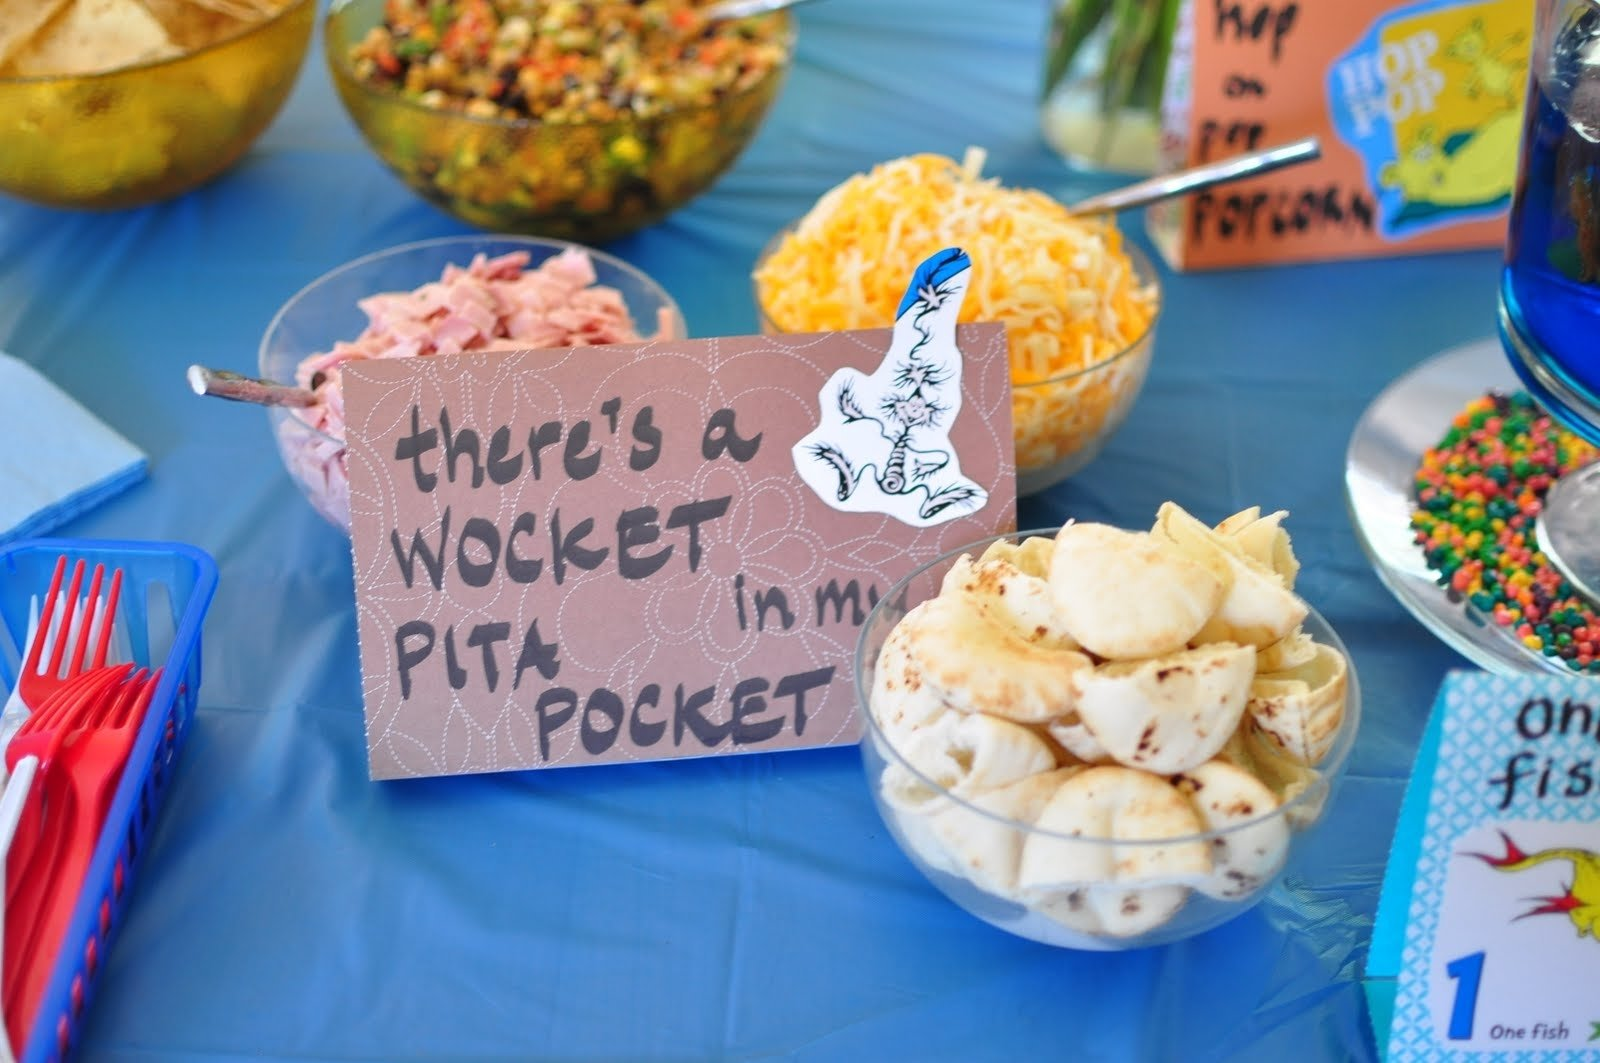 10 Unique Dr Seuss Baby Shower Food Ideas dr seuss themed party baby shower serving from home 2020